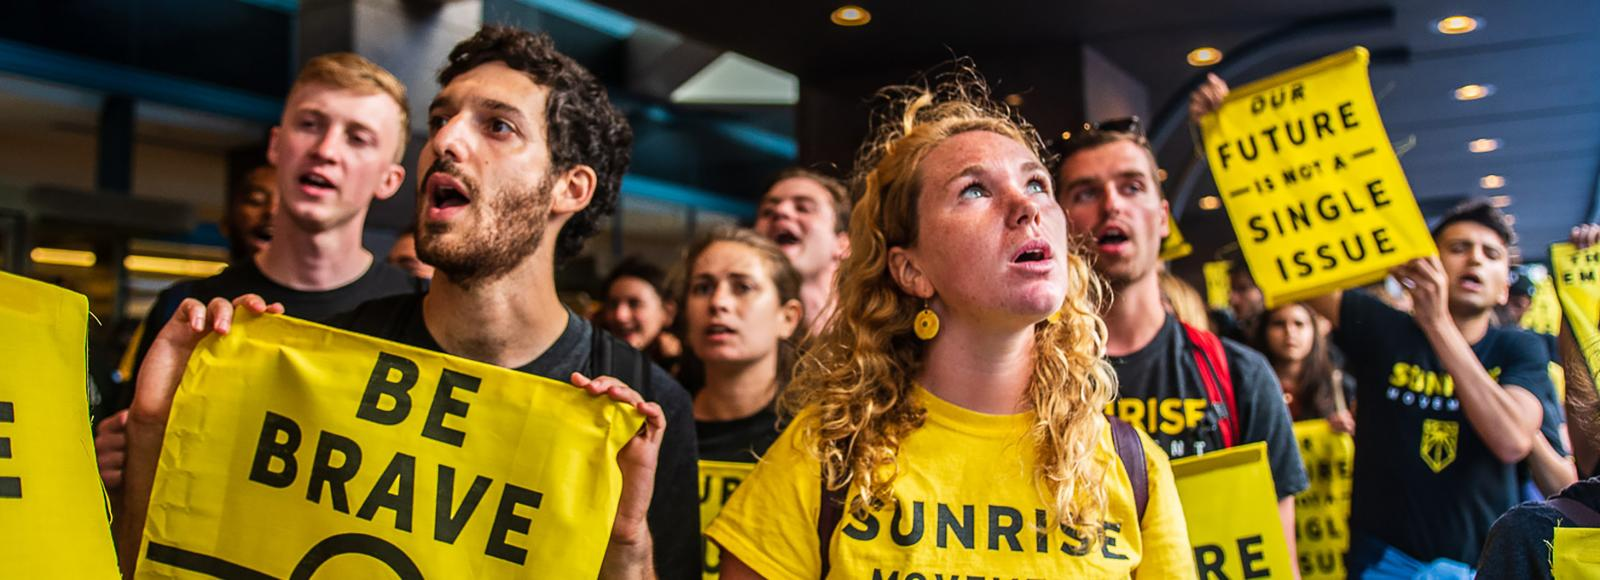 Young people carrying small yellow banners with the words